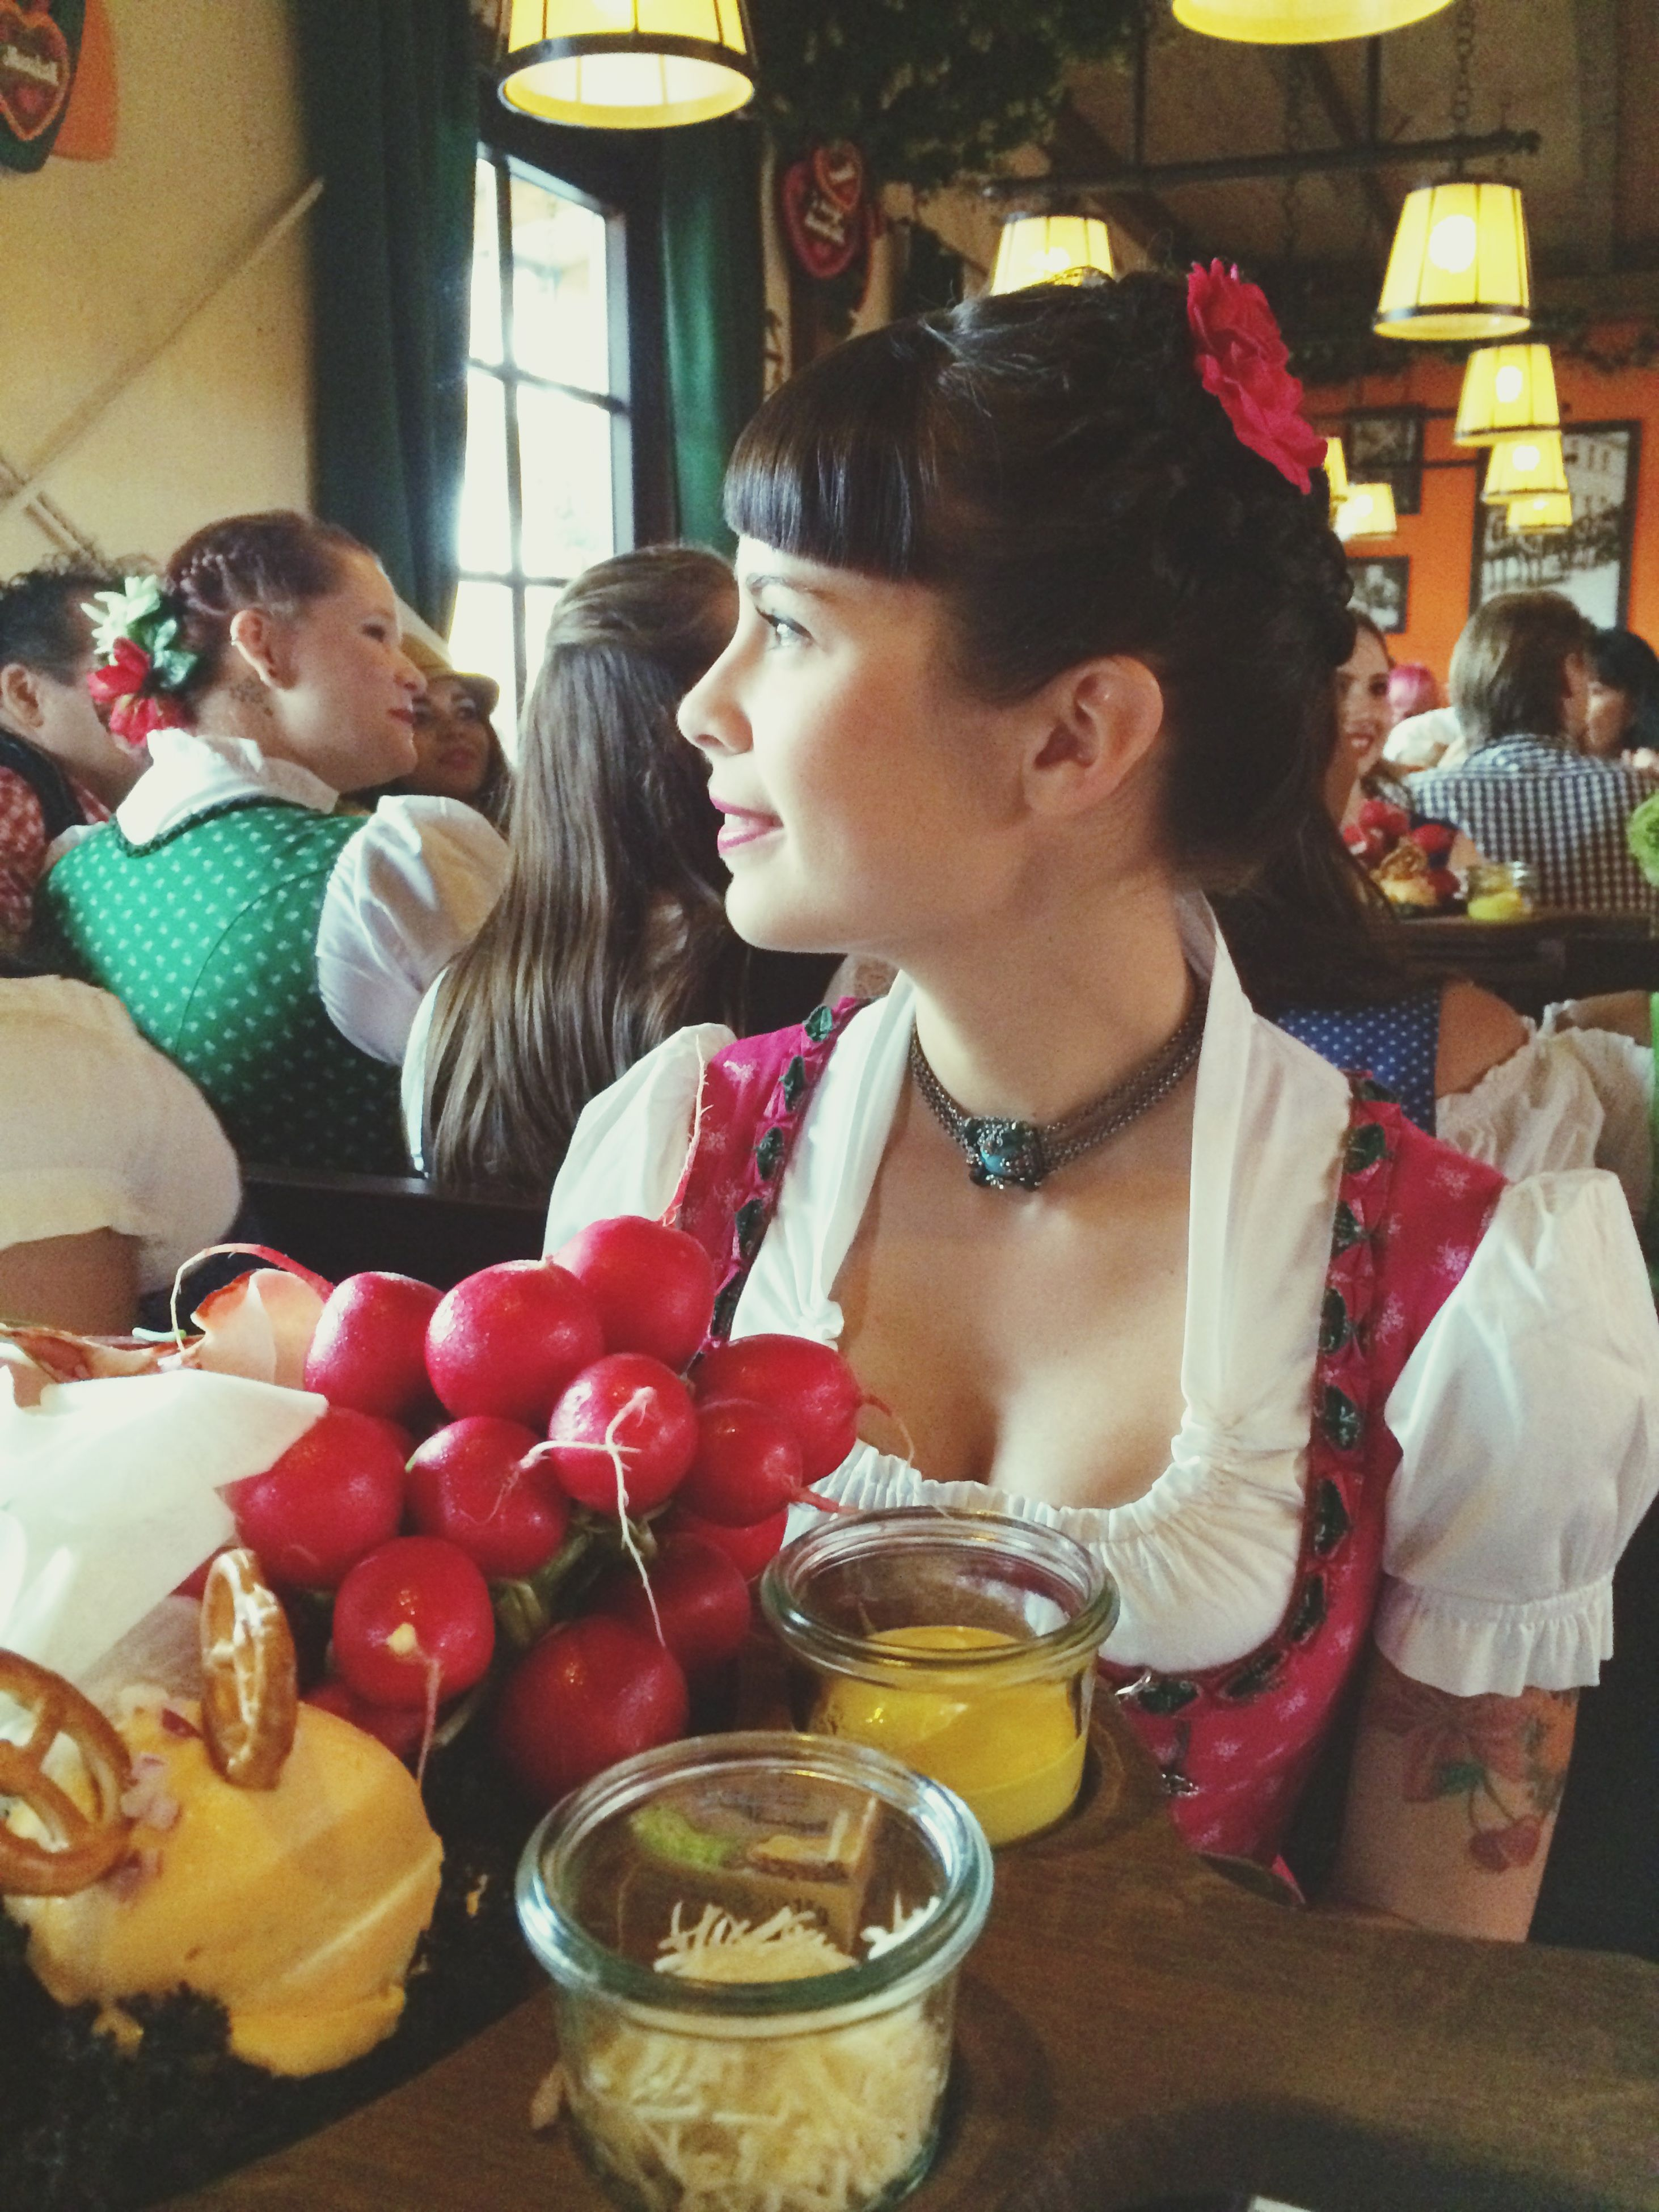 indoors, person, lifestyles, casual clothing, sitting, leisure activity, looking at camera, food and drink, portrait, table, home interior, young adult, front view, smiling, restaurant, waist up, food, happiness